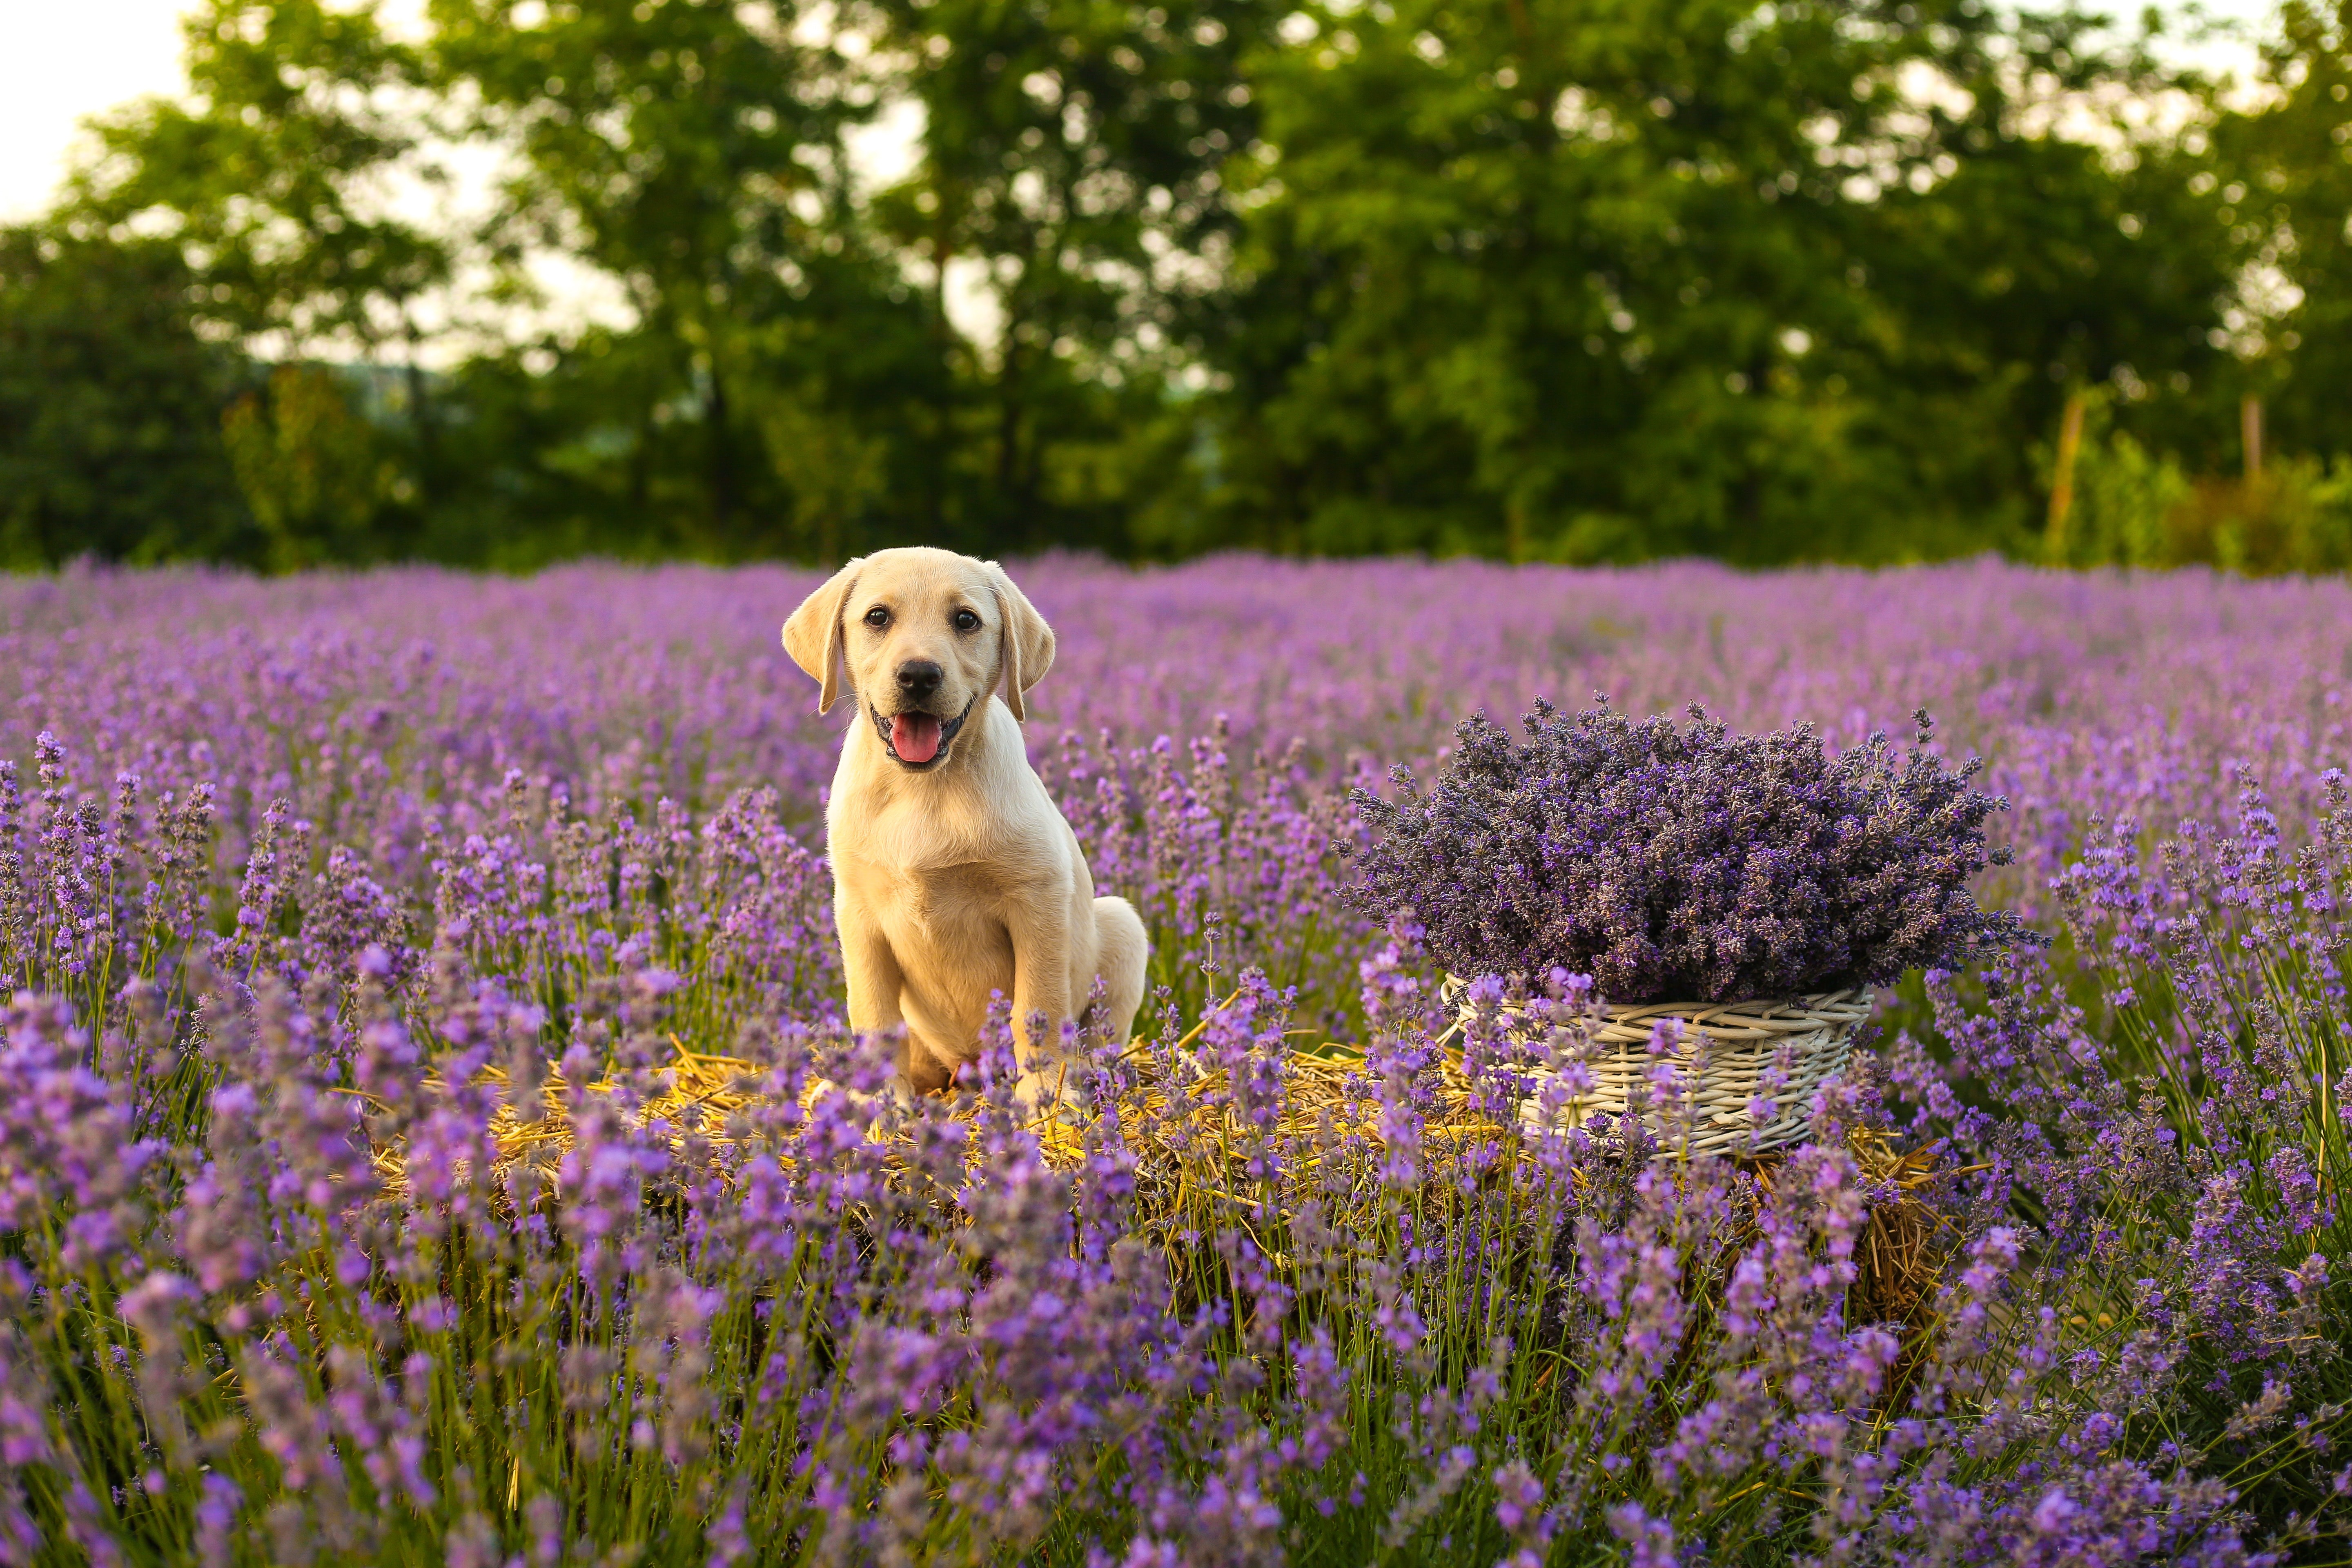 77653 download wallpaper Animals, Labrador, Dog, Puppy, Protruding Tongue, Tongue Stuck Out, Lavender screensavers and pictures for free